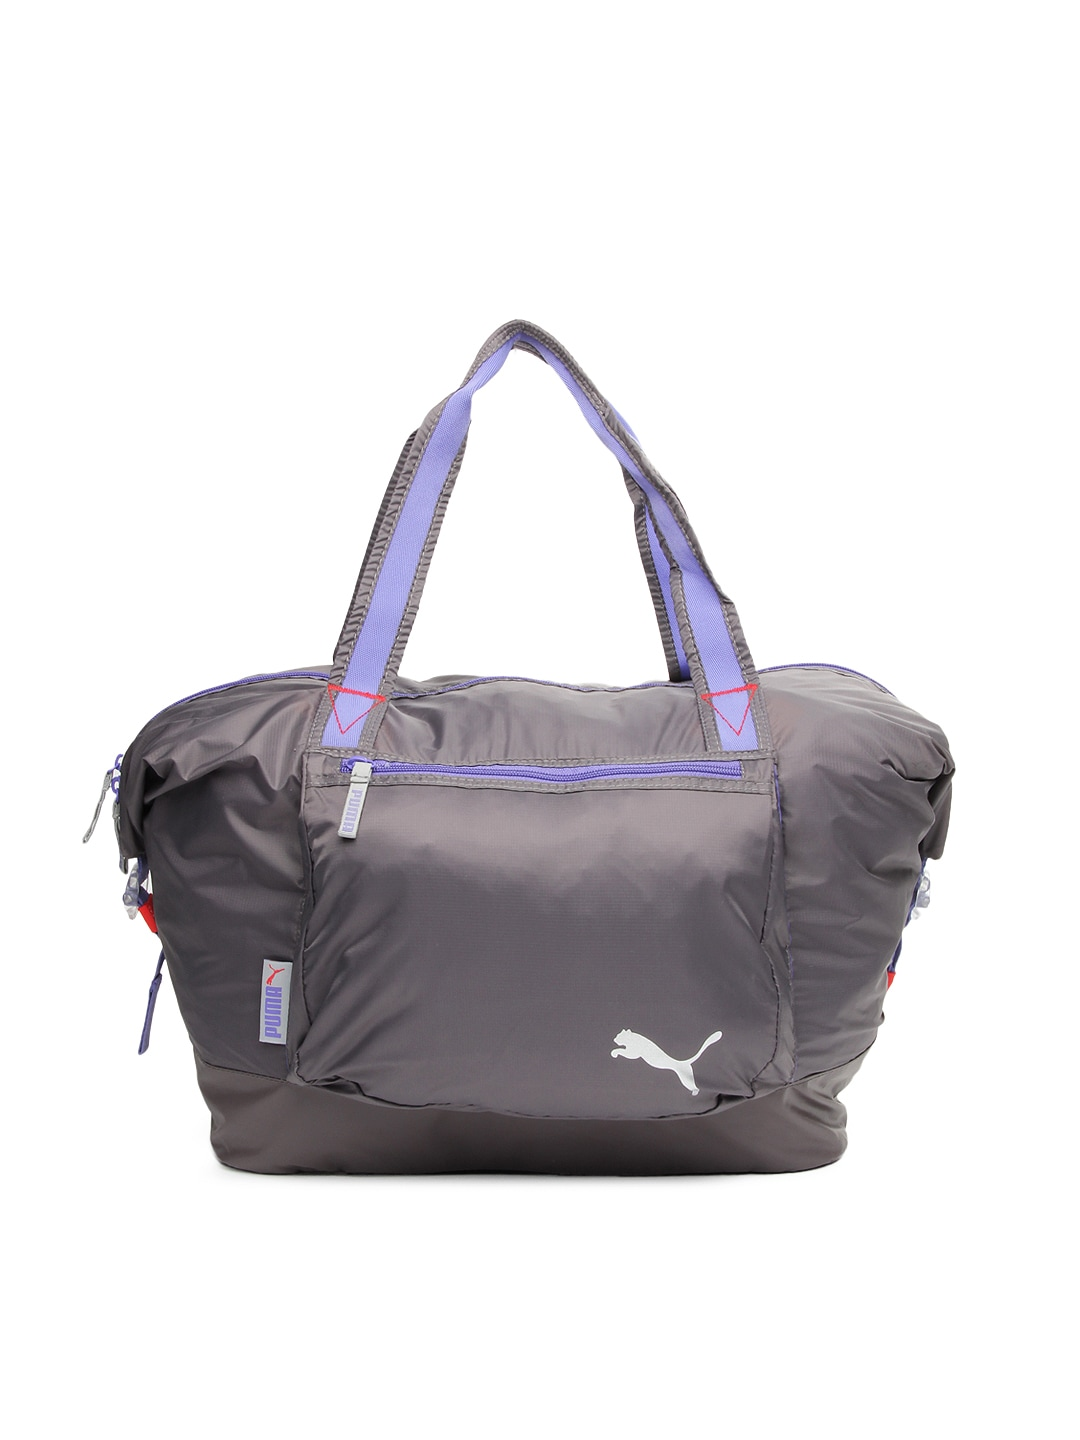 Popular 10 Off Puma Gym Sports Womens Duffle Bag  Pink  Slashsport Shop